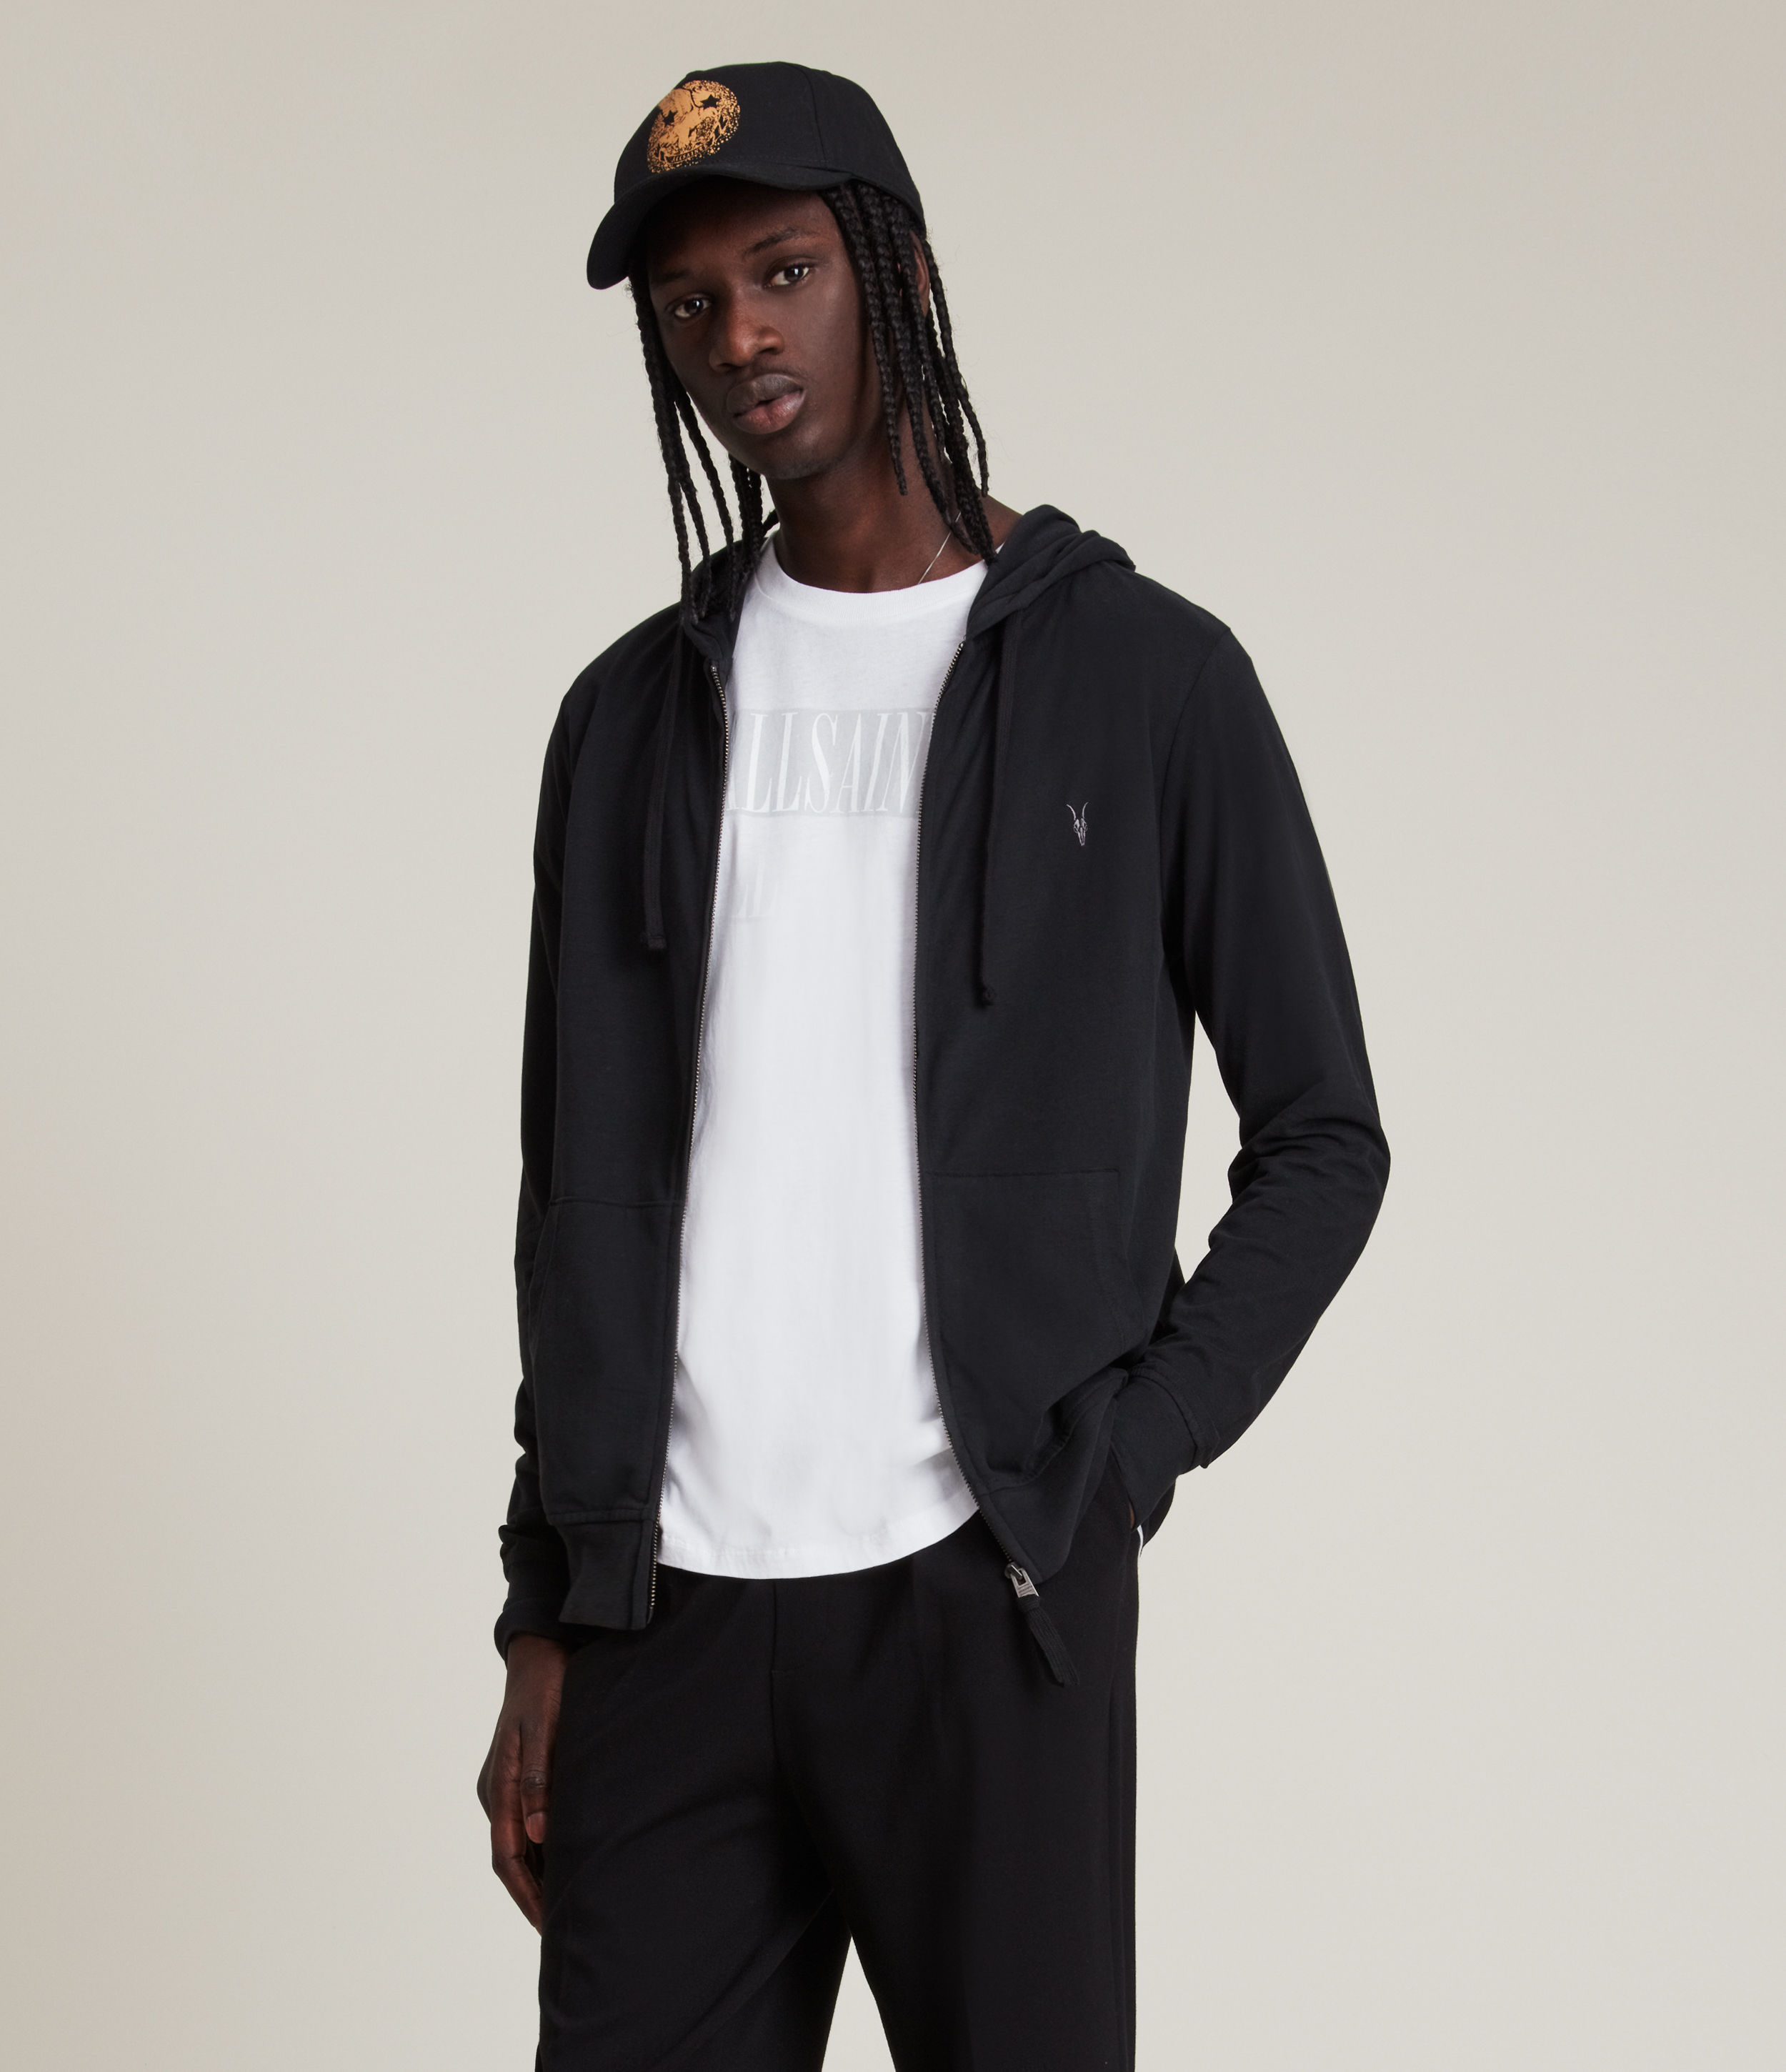 AllSaints Men's Cotton Regular Fit Brace Hoodie, Black, Size: S